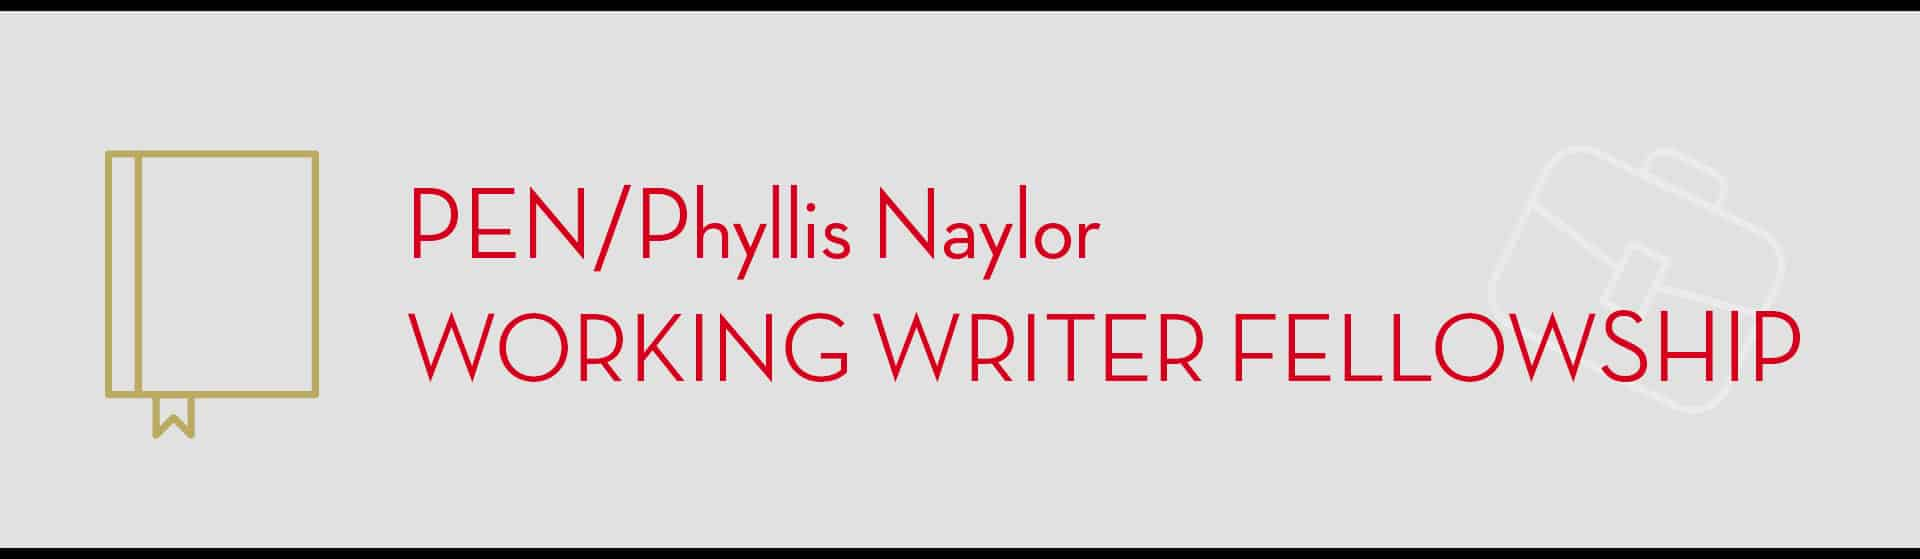 2018 PEN/Phyllis Naylor Working Writer Fellowship - PEN America